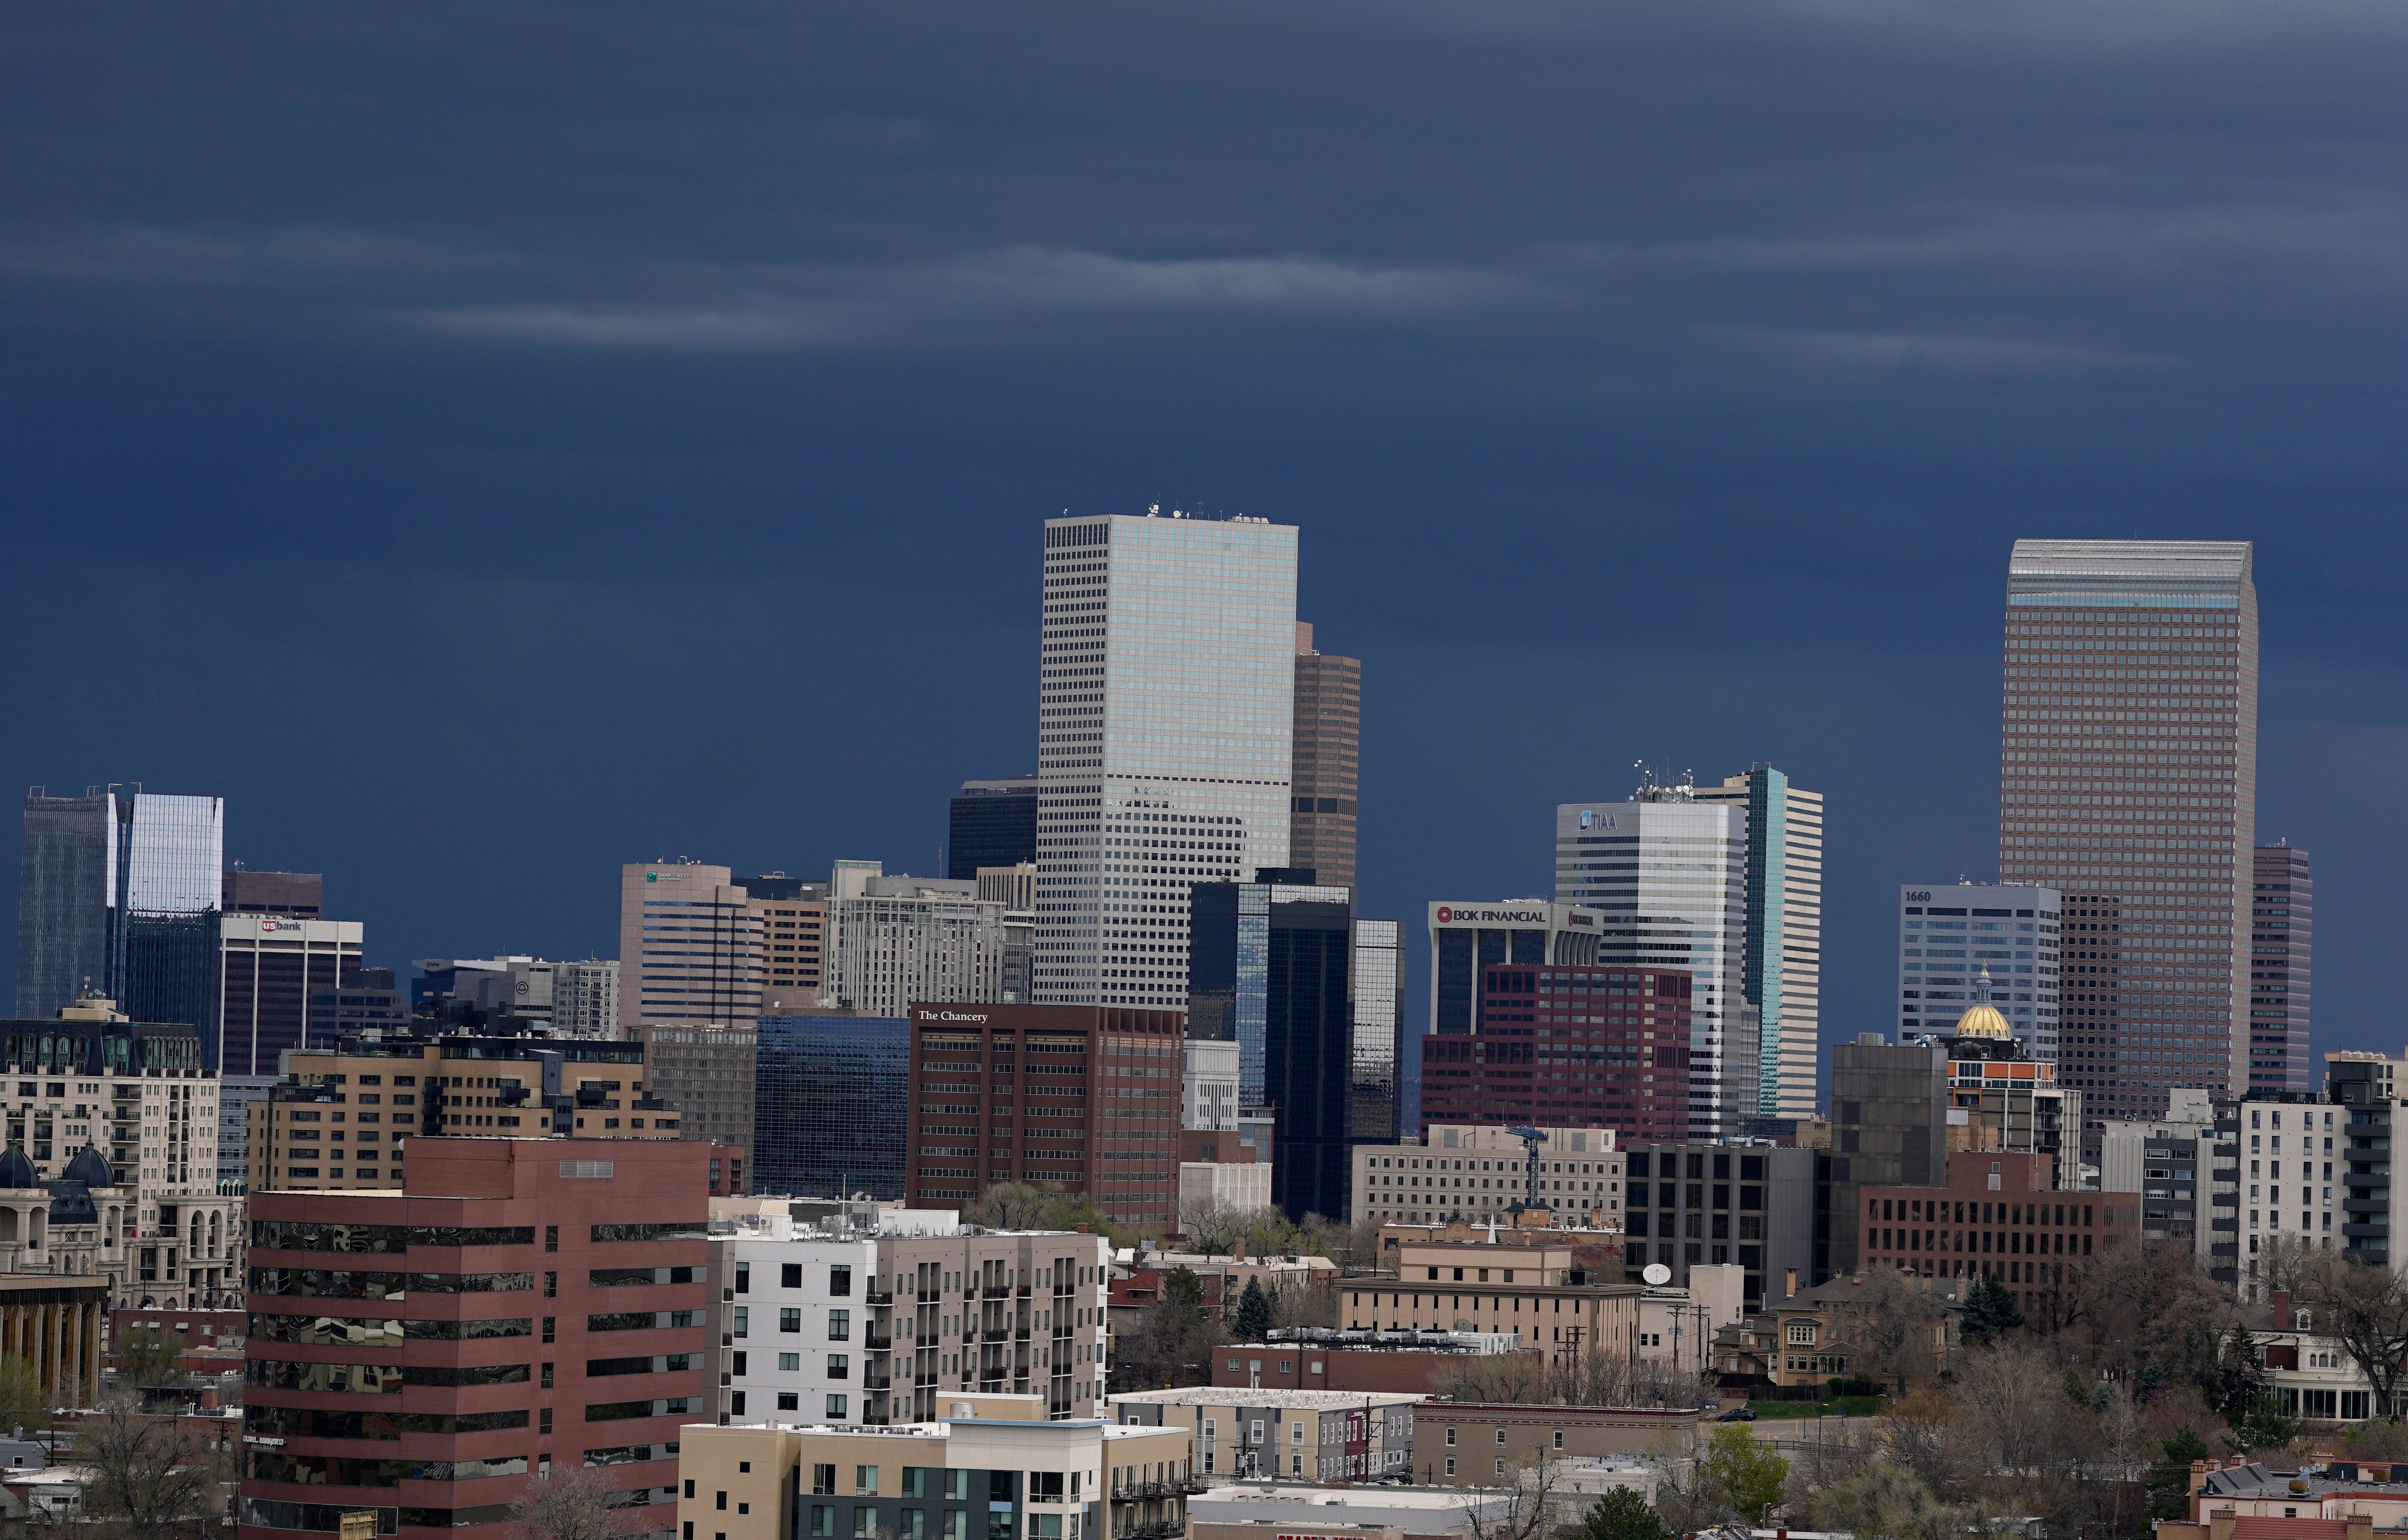 Two weather systems bring threat of flash flooding, drastic temperature changes across US